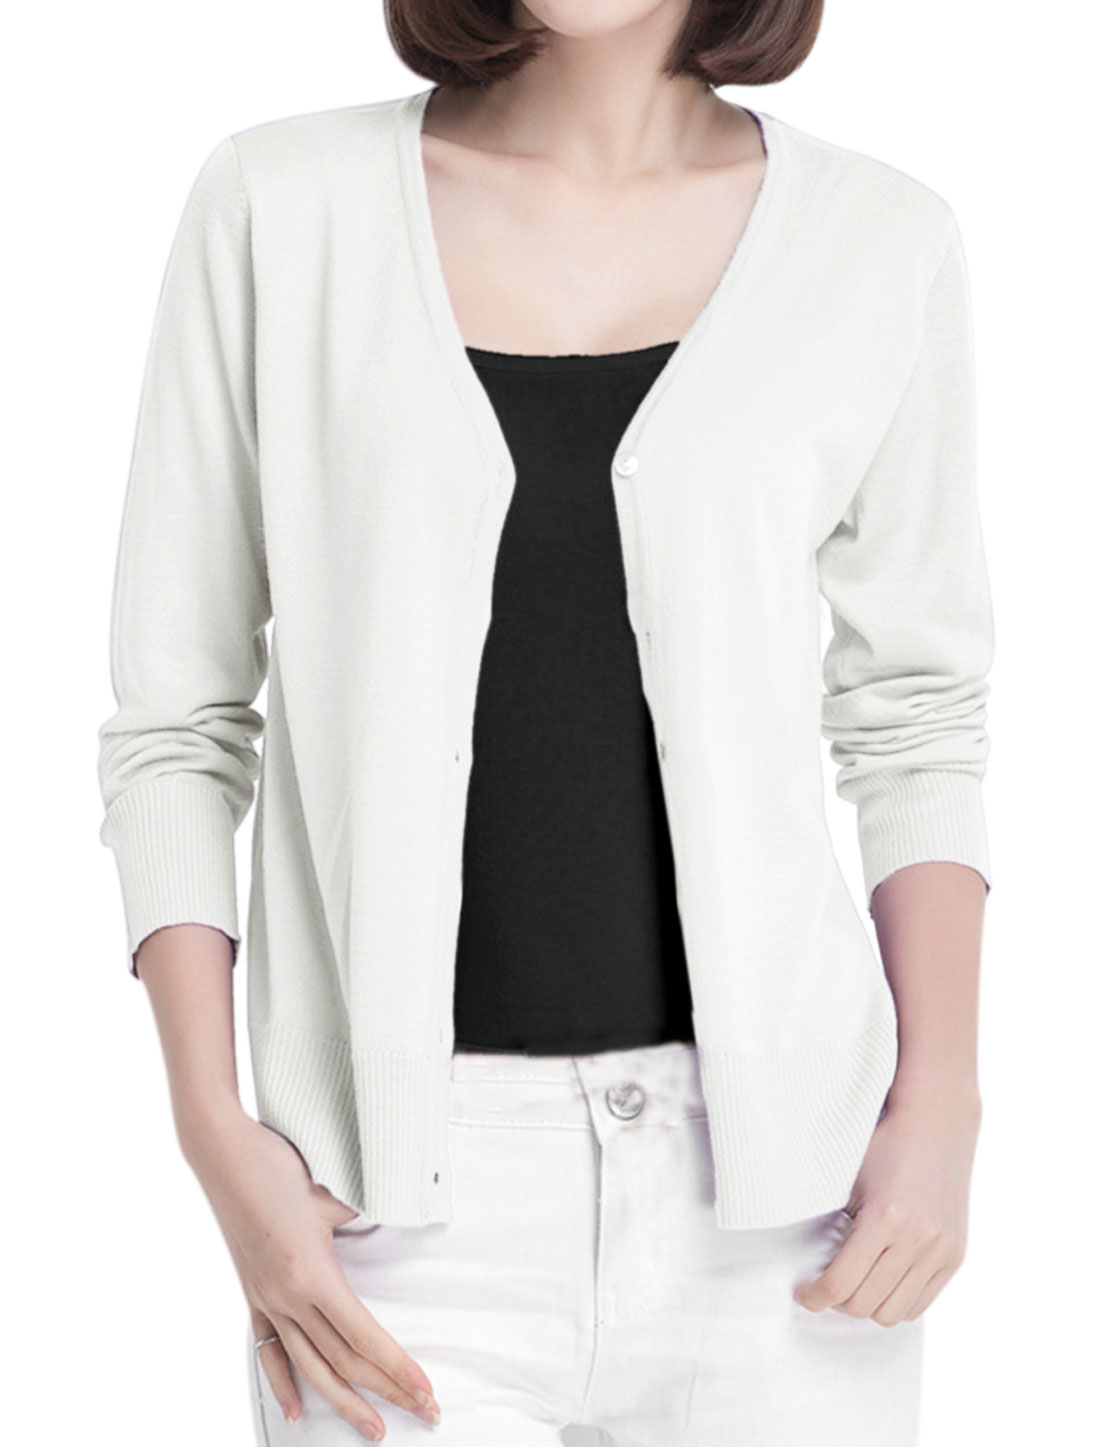 New Style Leisure V Neck Ribbed Cuff w Hem Knit Cardigan for Lady White S